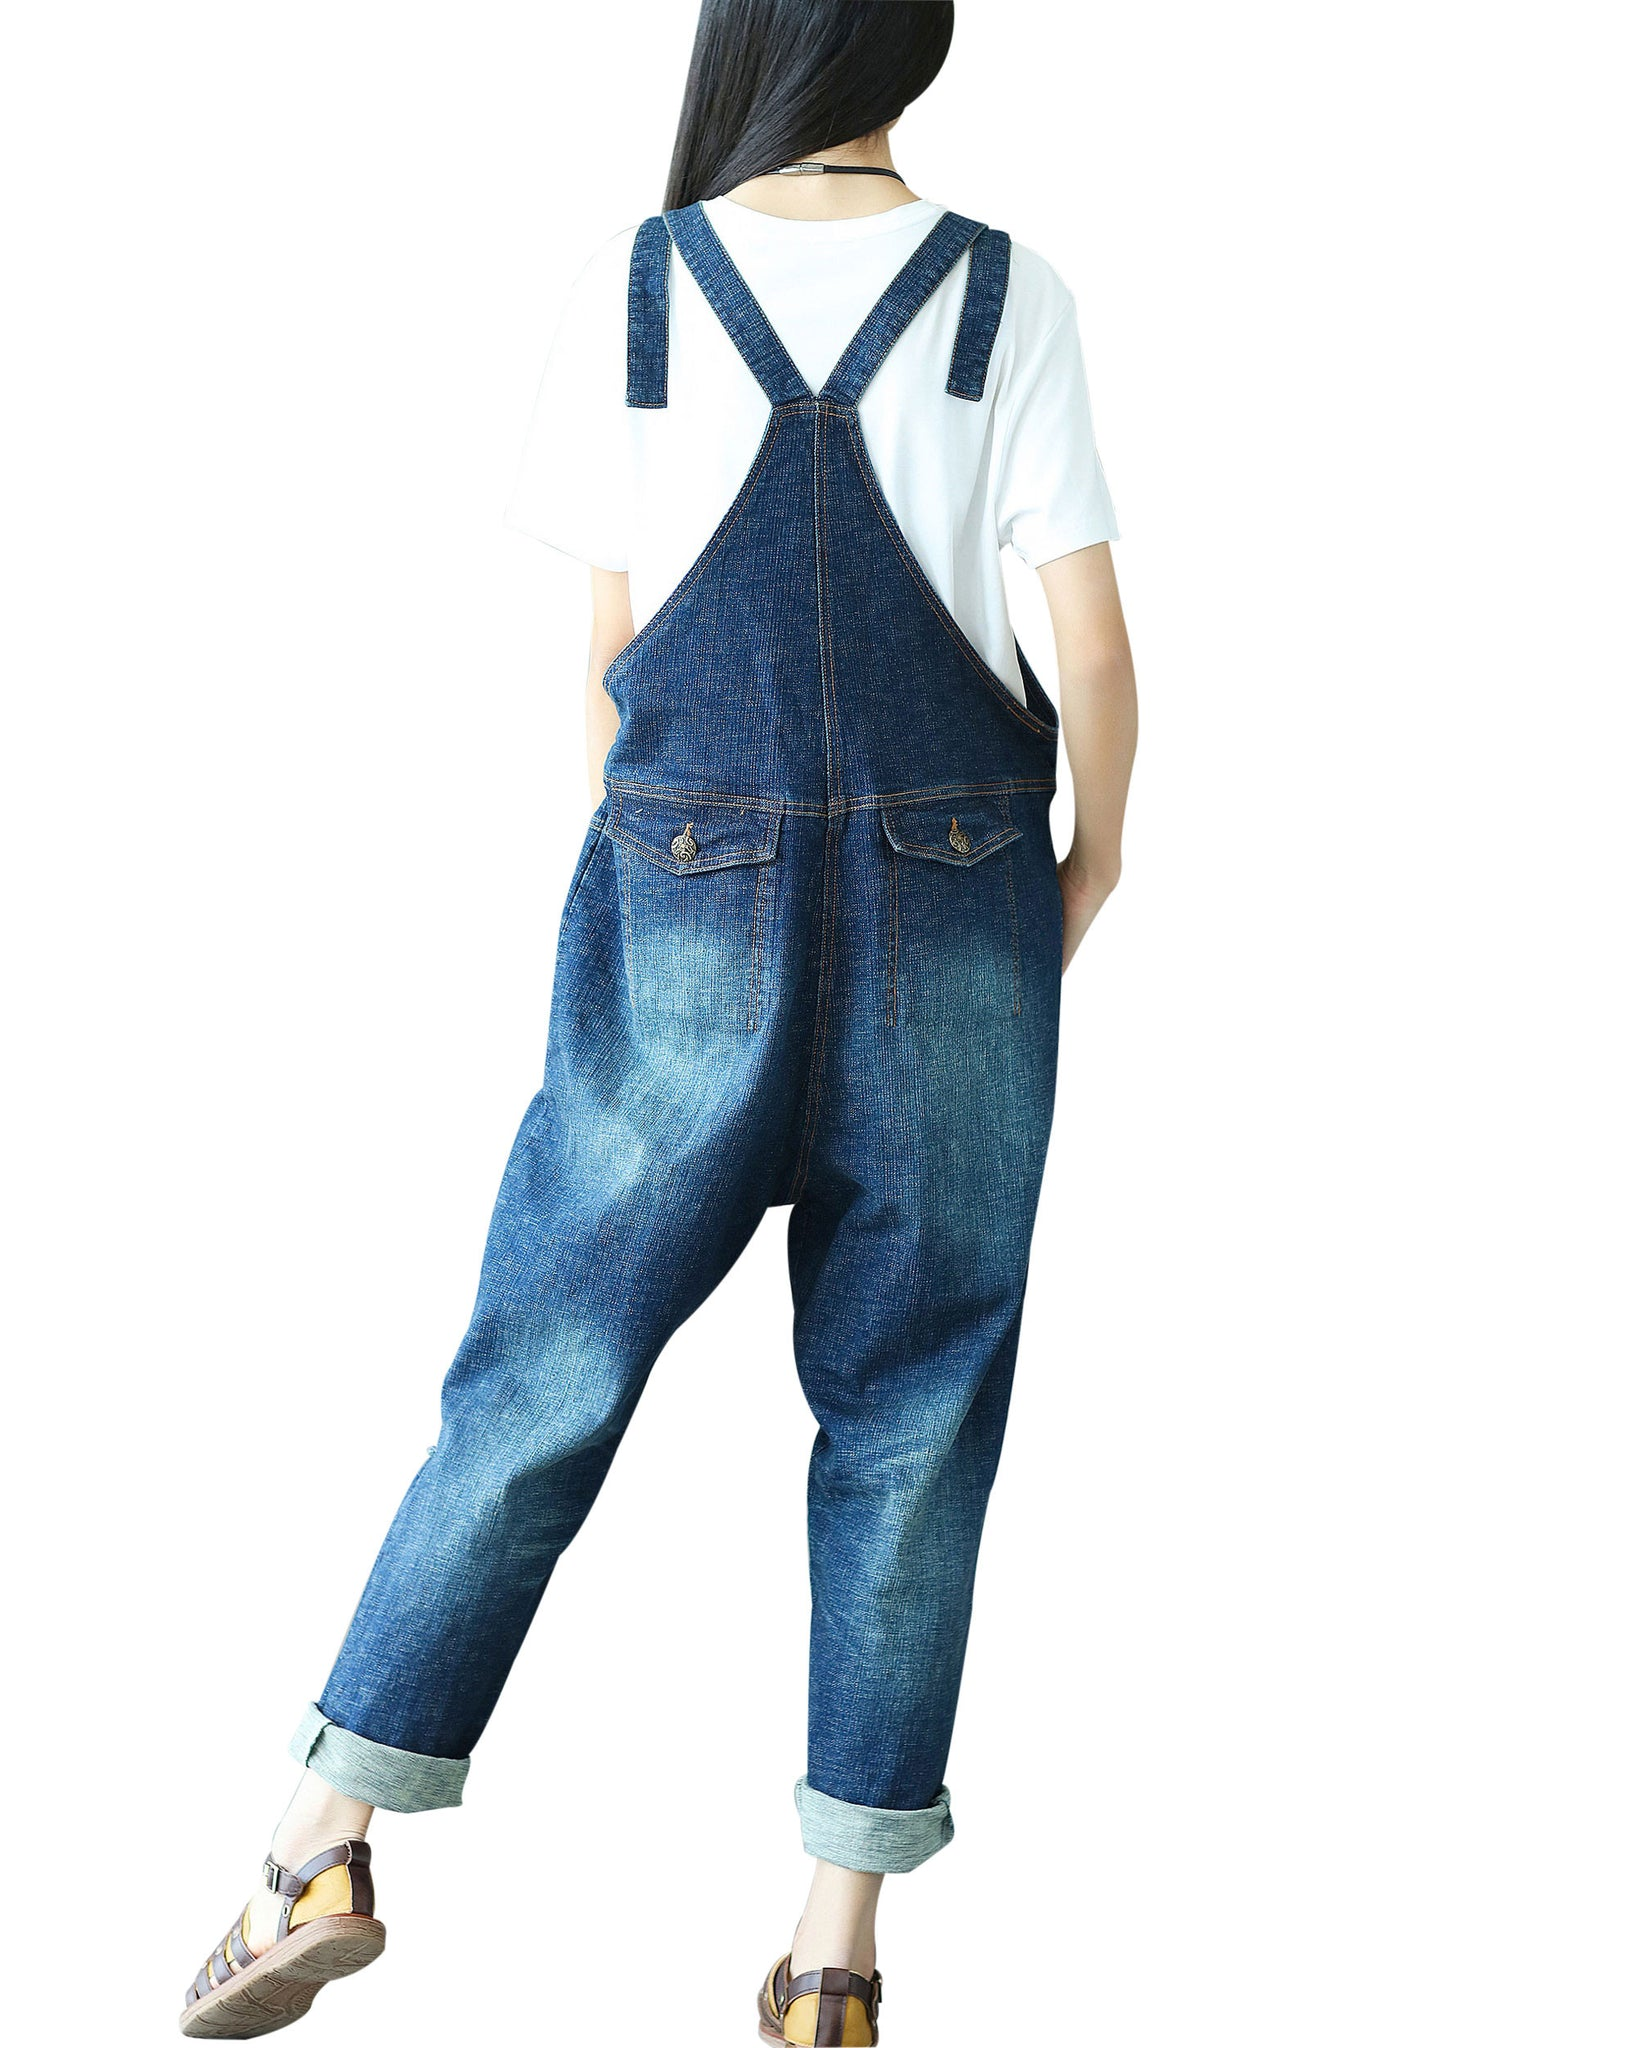 ea0cbe1ff10 ... Yeokou Women s Casual Loose Denim Overalls Oversized Baggy Wide Leg  Harem Pants ...